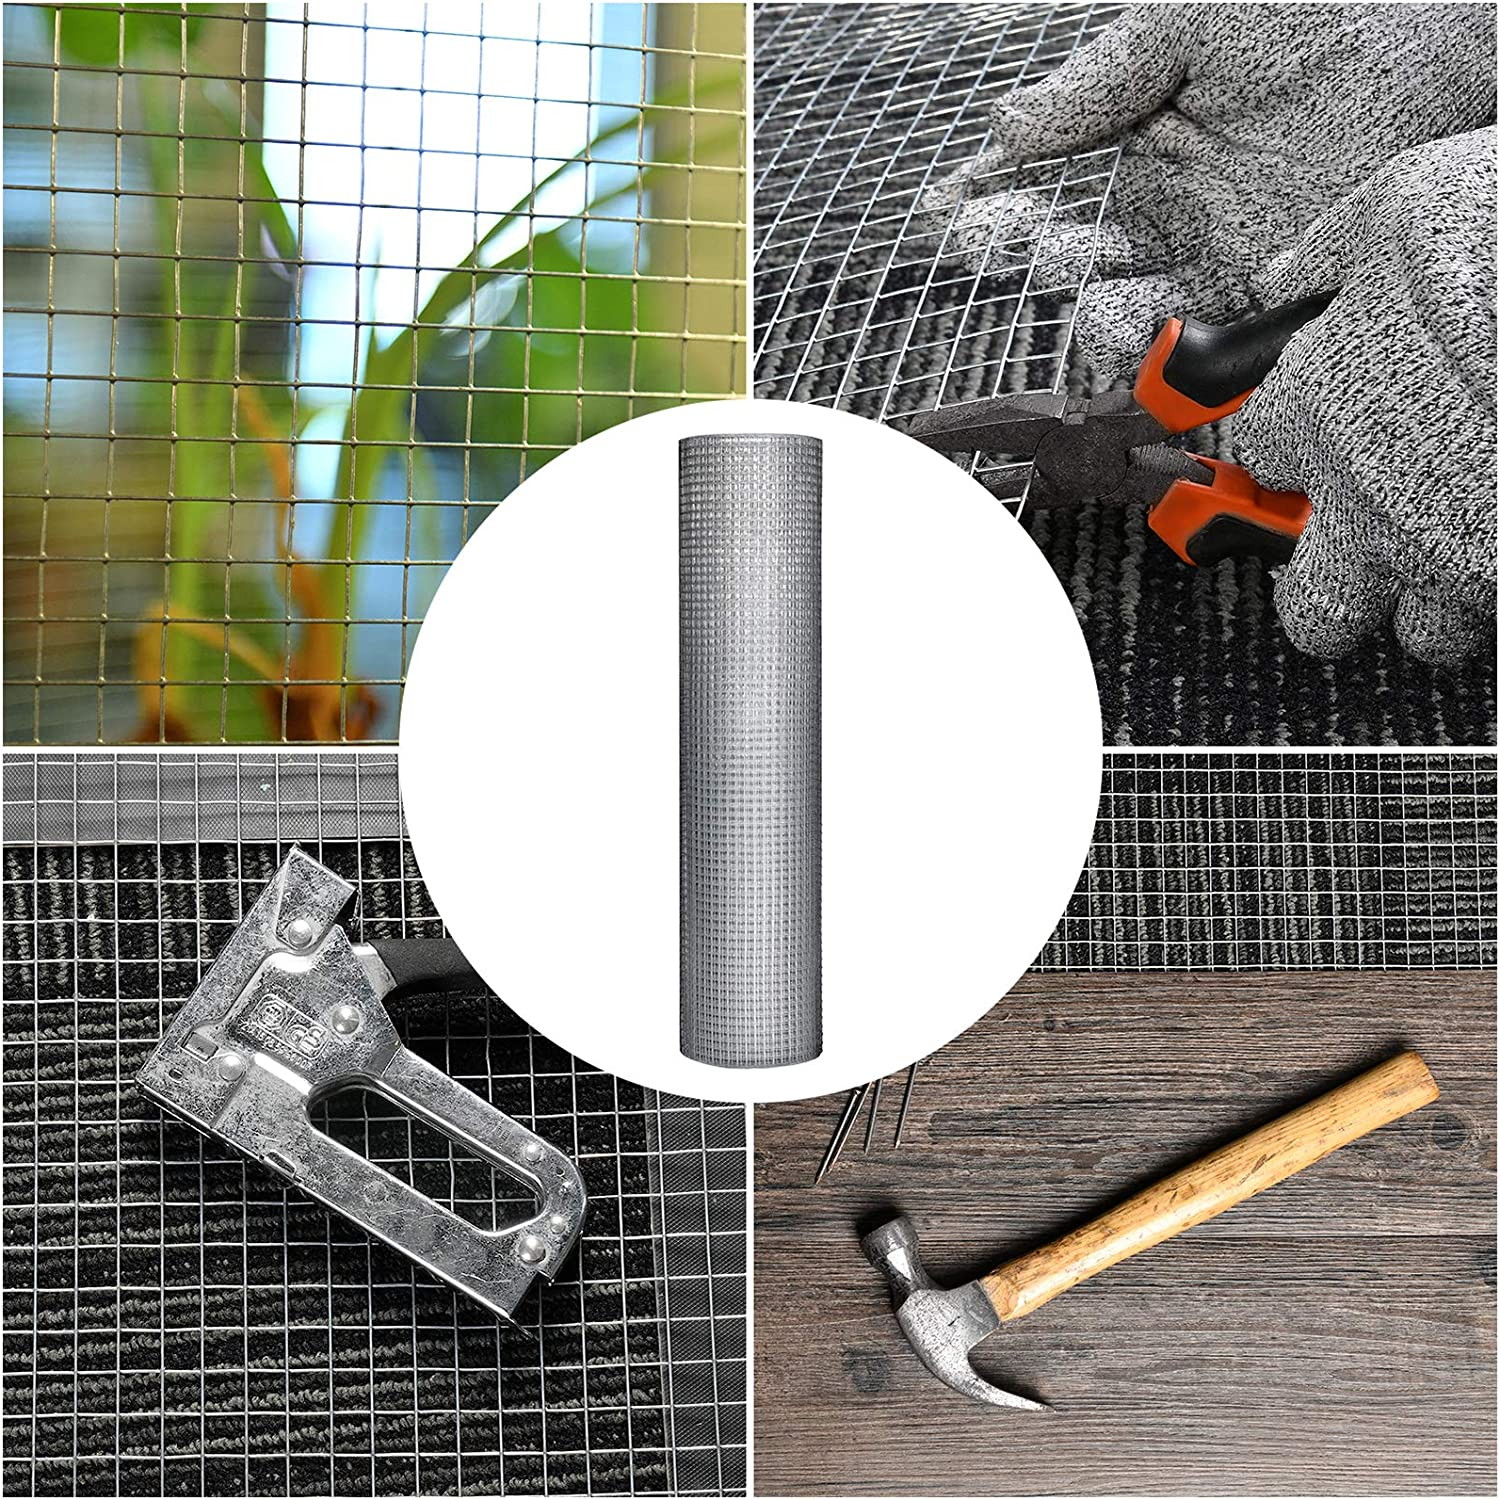 1//2 inch Square 19 Gauge Galvanized Wire mesh Welded Wire Hardware Cloth Gutter Guard 48 x 40 Welded Cage Wire Chicken Fence mesh Fence mesh for Chicken Coop Animal Control and Garden Use